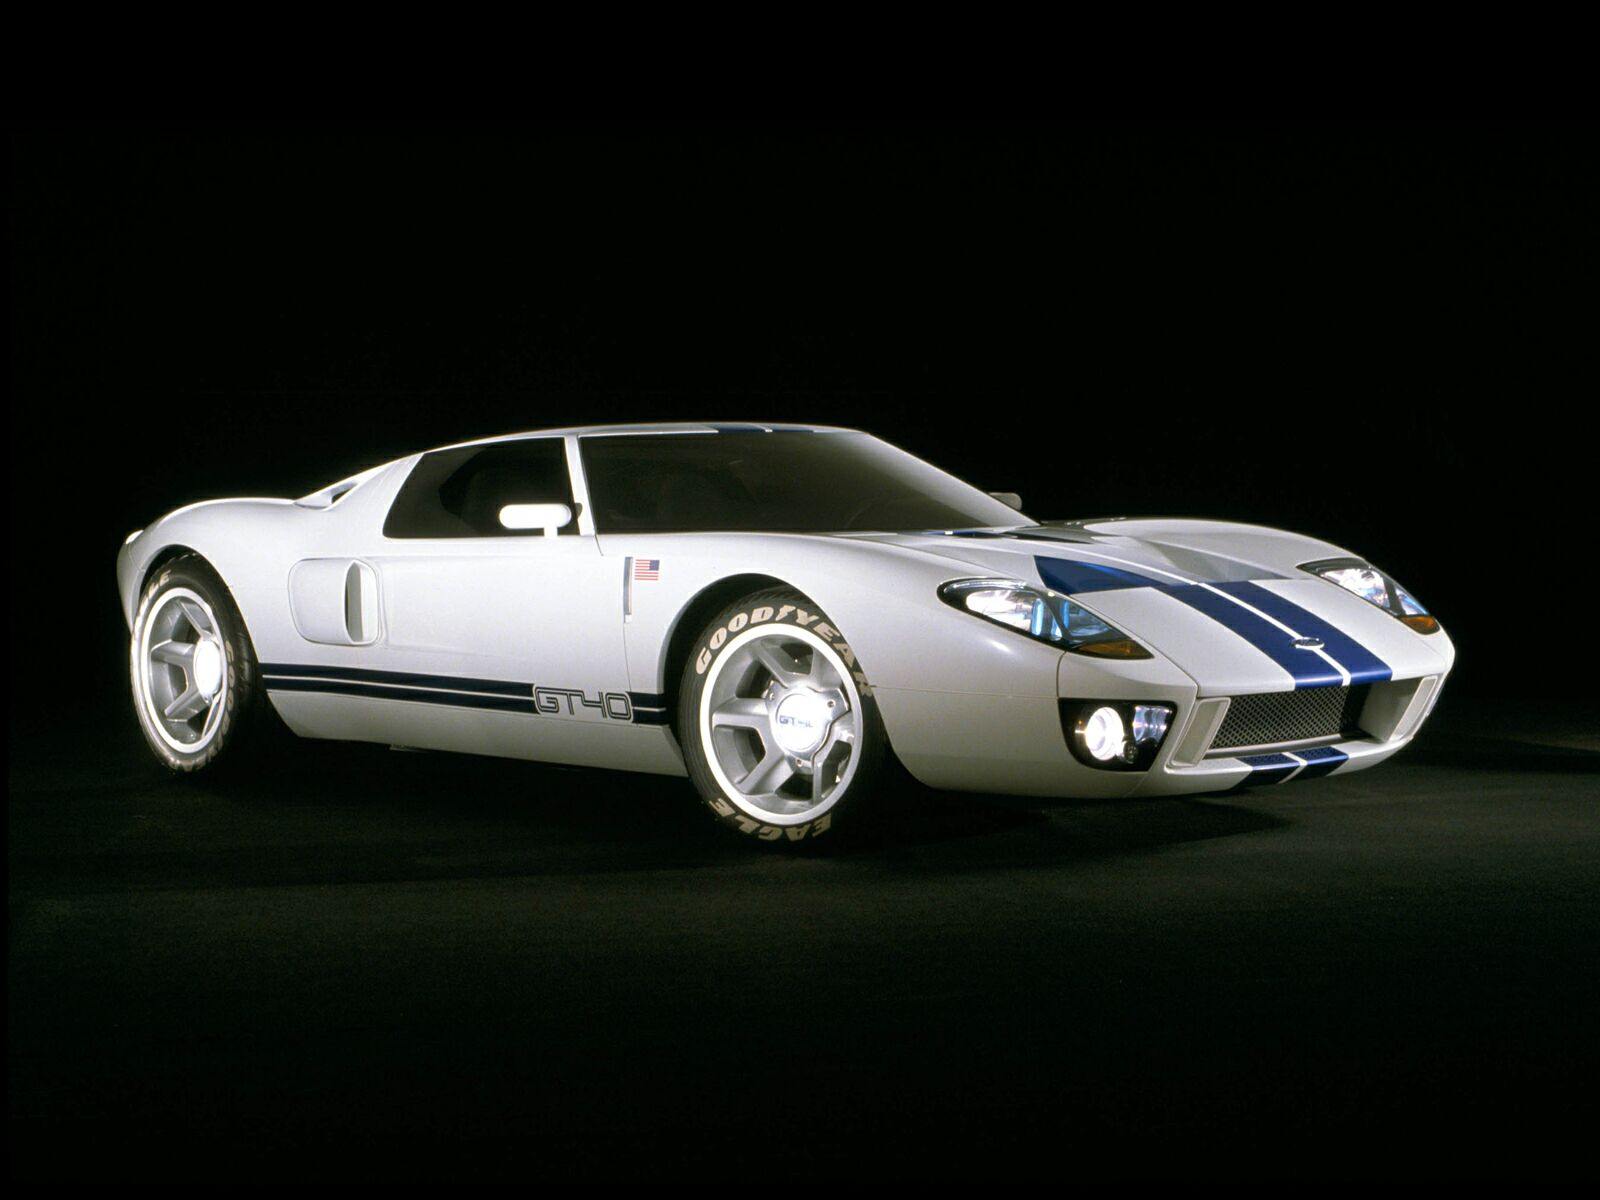 Ford Gt 2009 Wallpaper 4098 Hd Wallpapers in Cars   Imagescicom 1600x1200